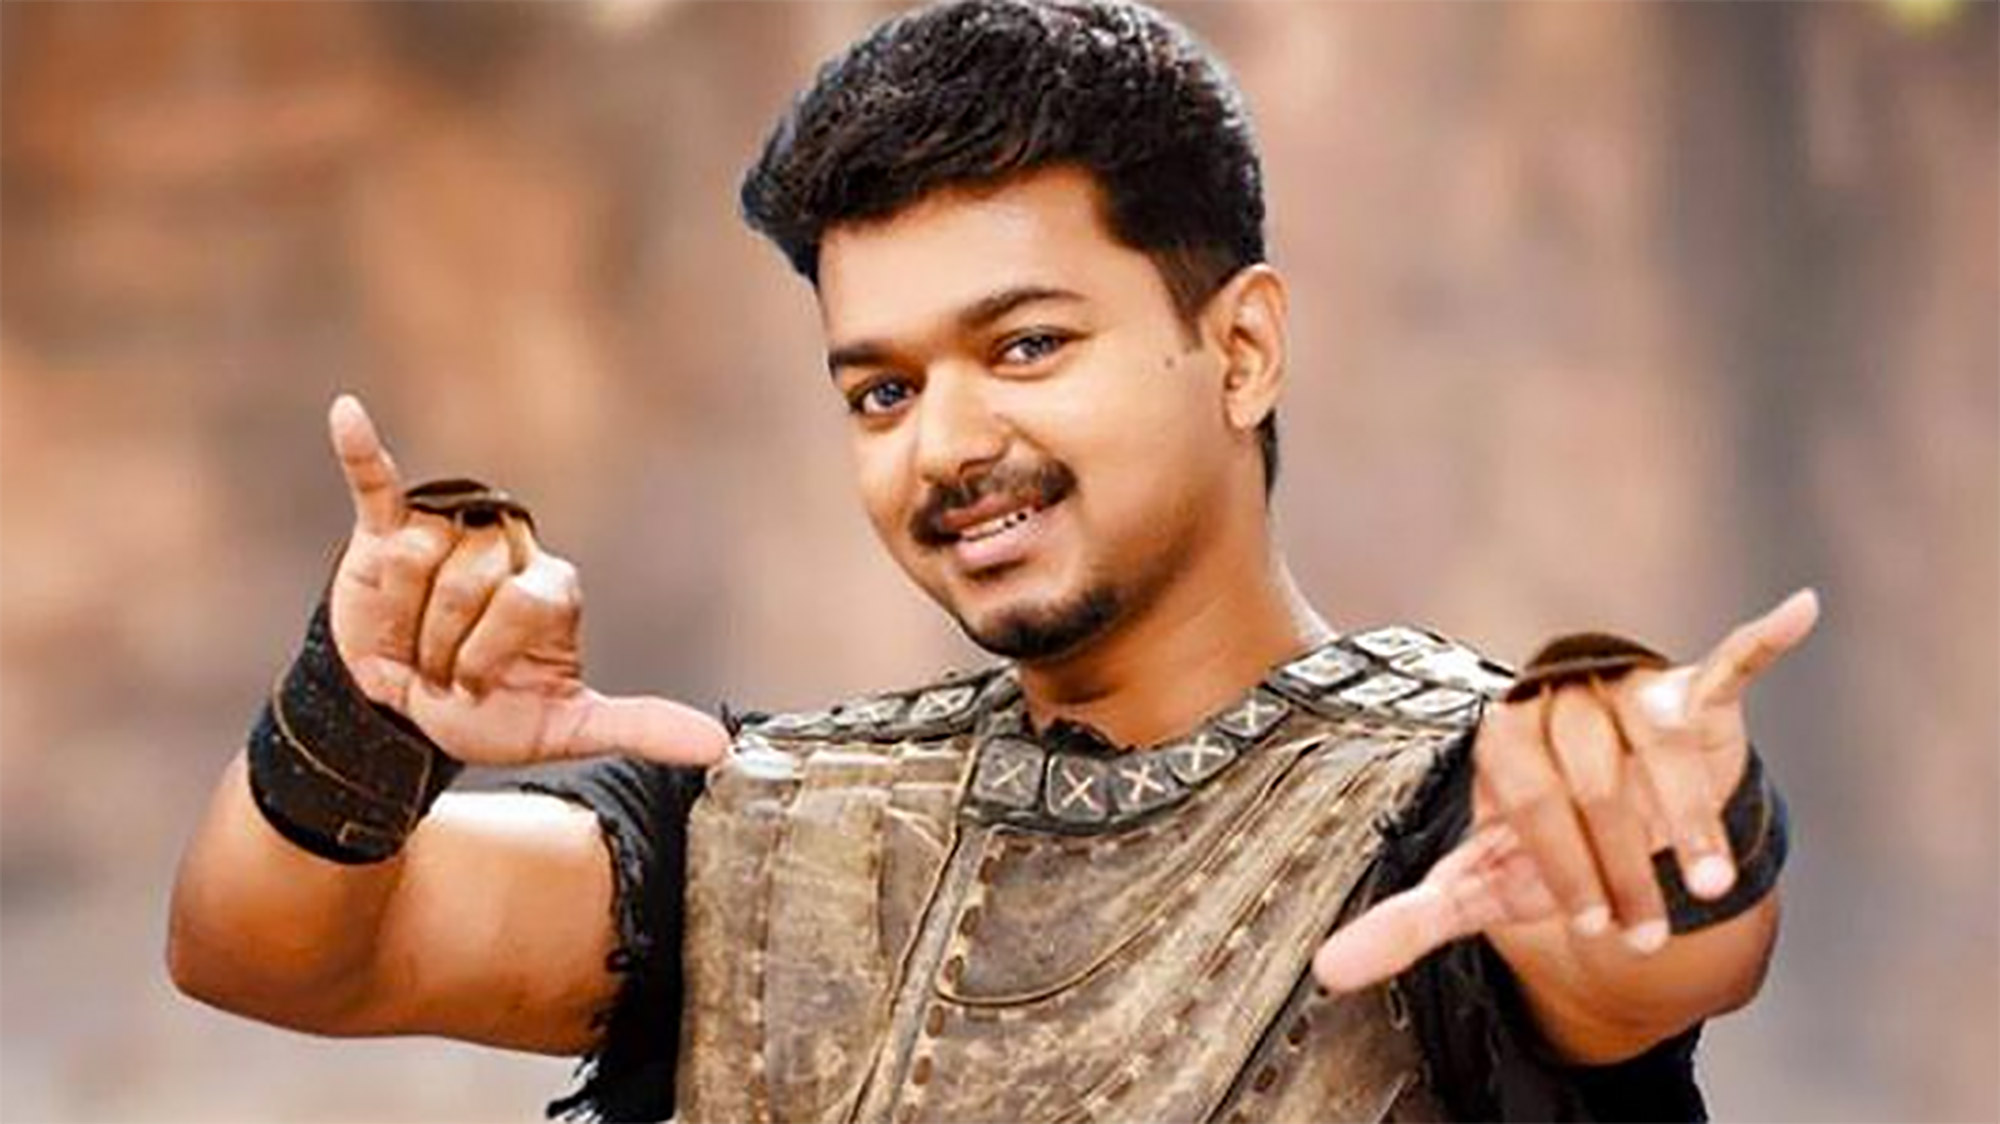 Vijay wallpapers high resolution and quality download - Vijay high quality images download ...